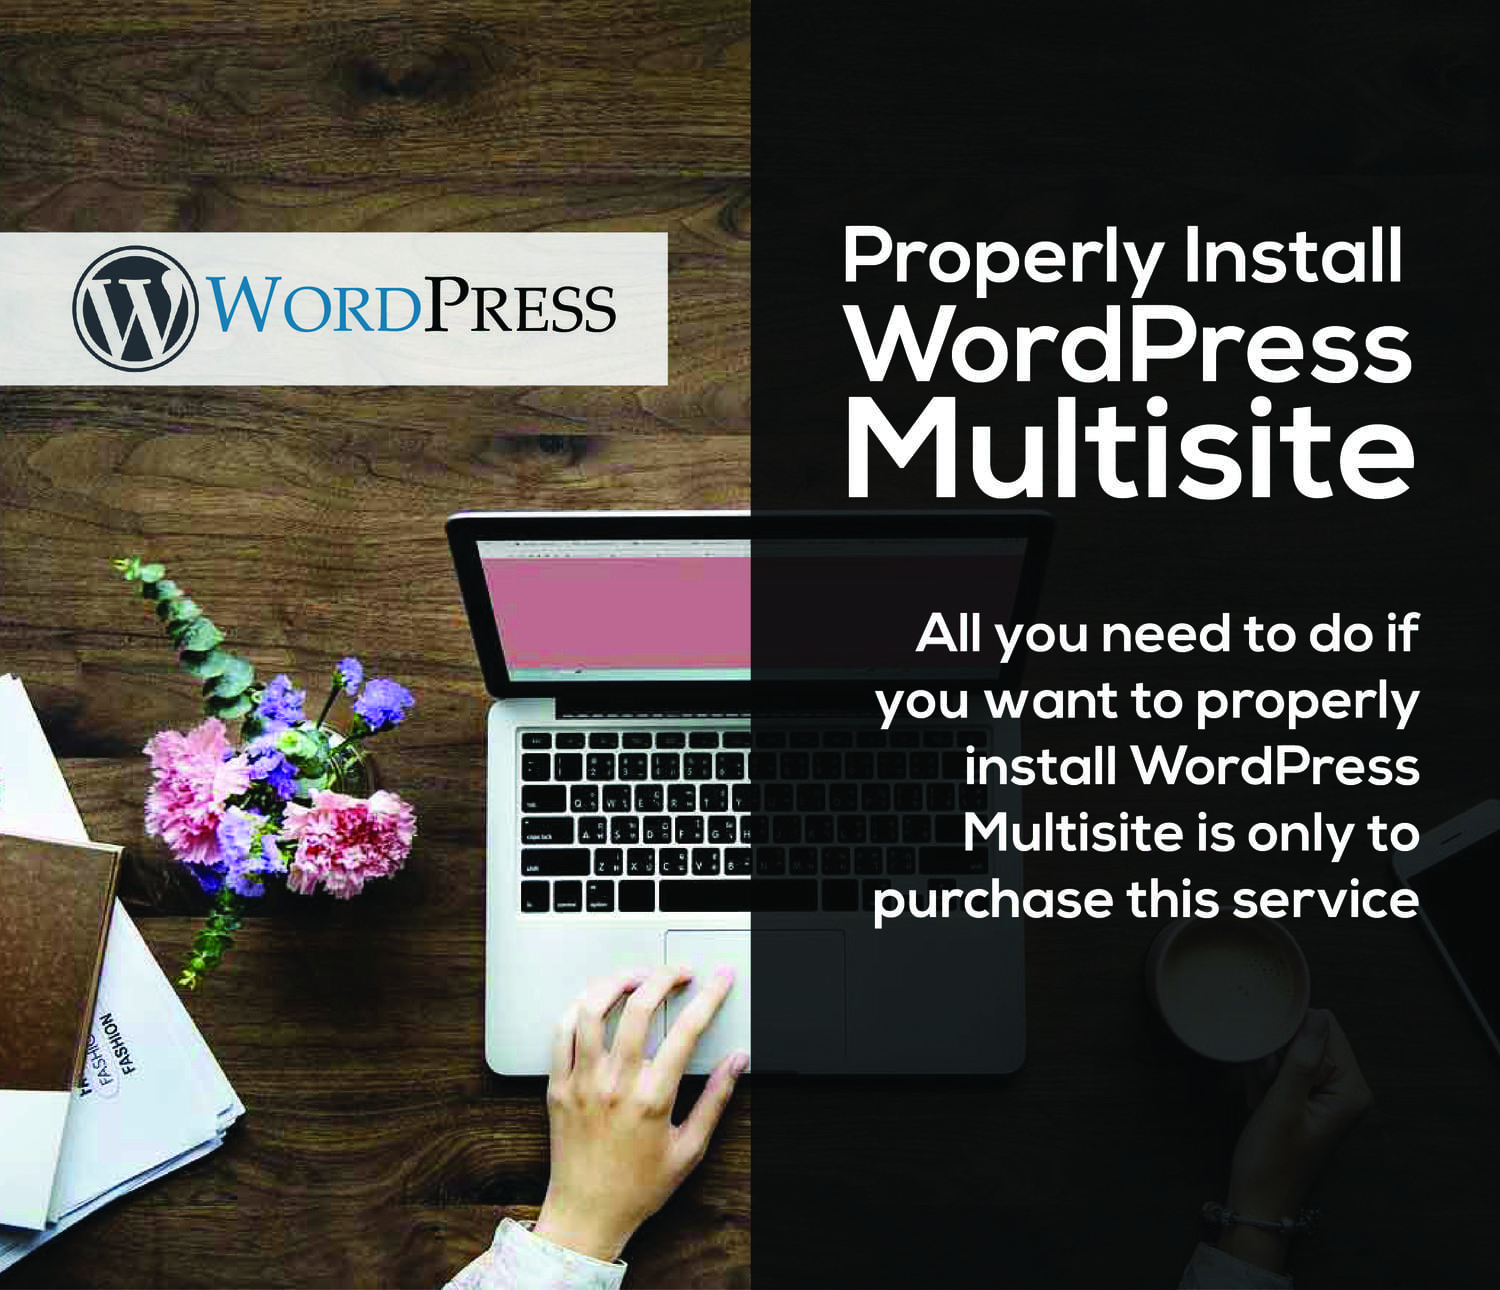 Properly Install WordPress Multisite by MuhammadHaroon - 116484